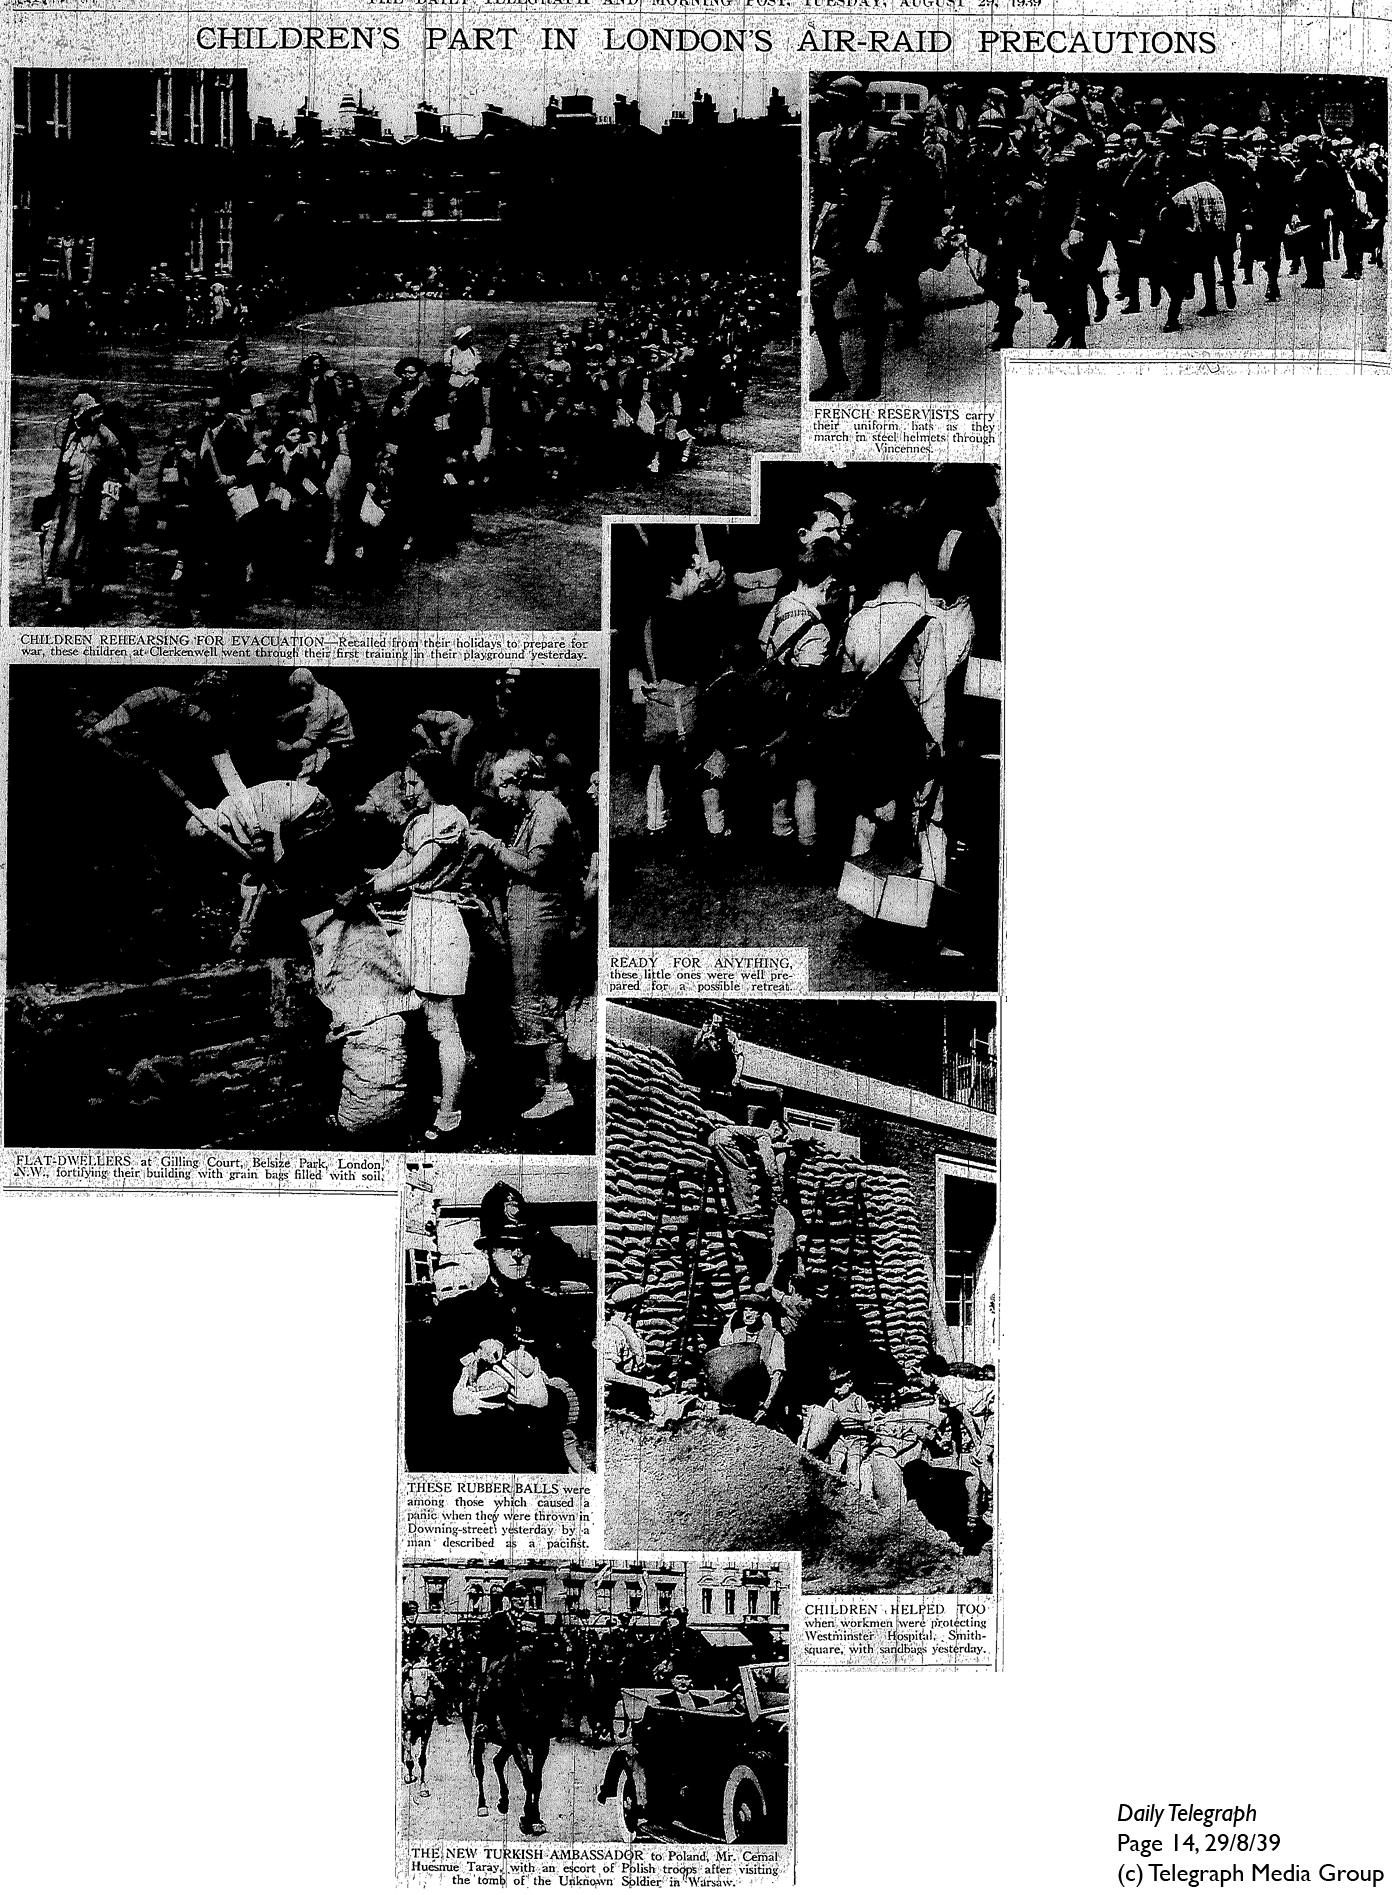 Daily Telegraph 29-8-39 Page 14